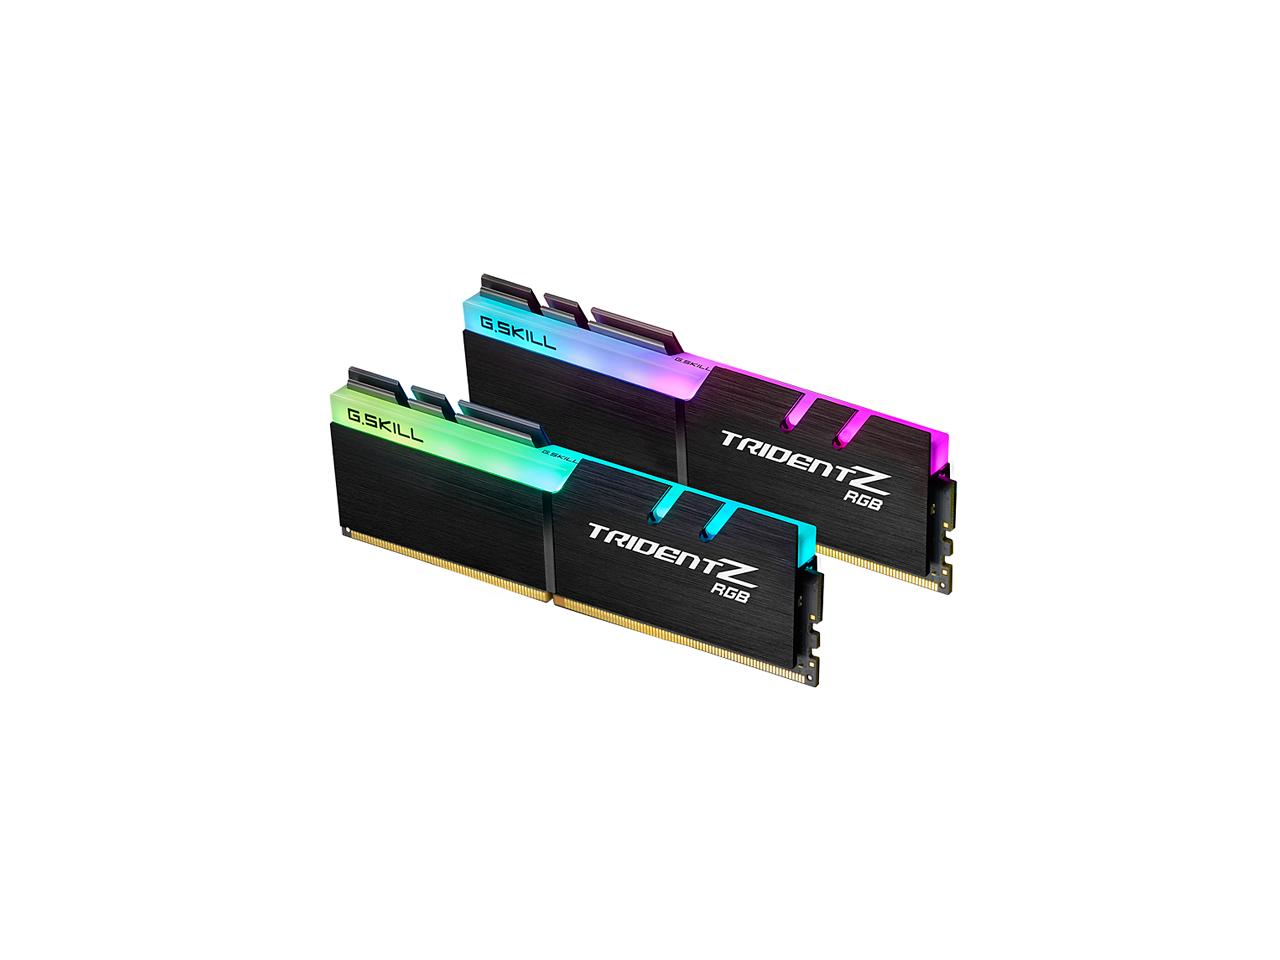 G.SKILL TridentZ RGB Series 16GB (2 x 8GB) 288-Pin DDR4 DIMM 3000MHz CL16 (PC4 24000) -- F4-3000C16D-16GTZR